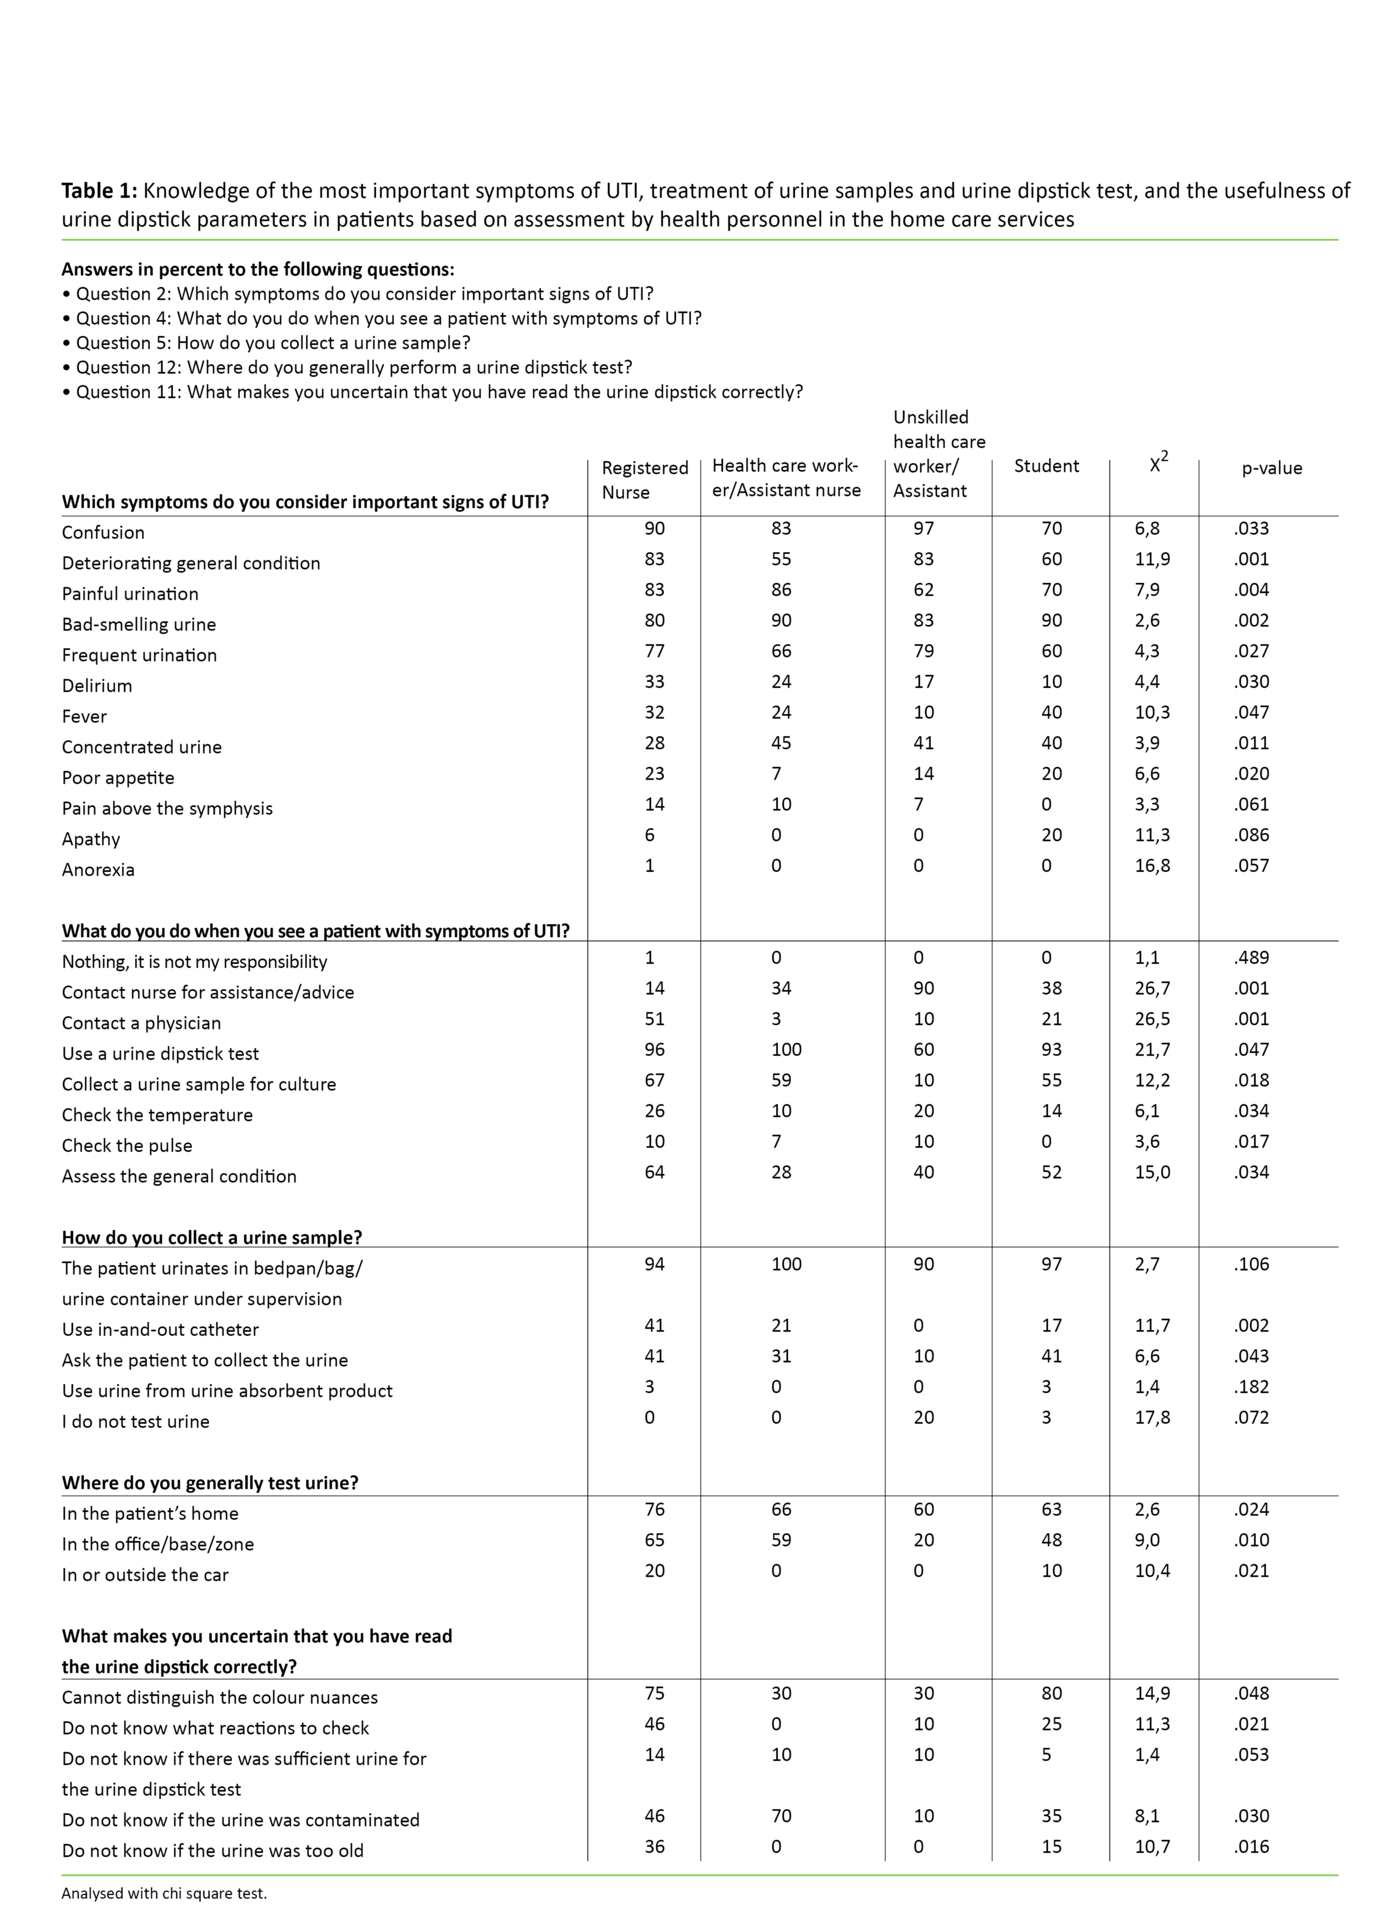 Table 1: Knowledge of the most important symptoms of UTI, treatment of urine samples and urine dipstick test, and the usefulness of urine dipstick parameters in patients based on assessment by health personnel in the home care services